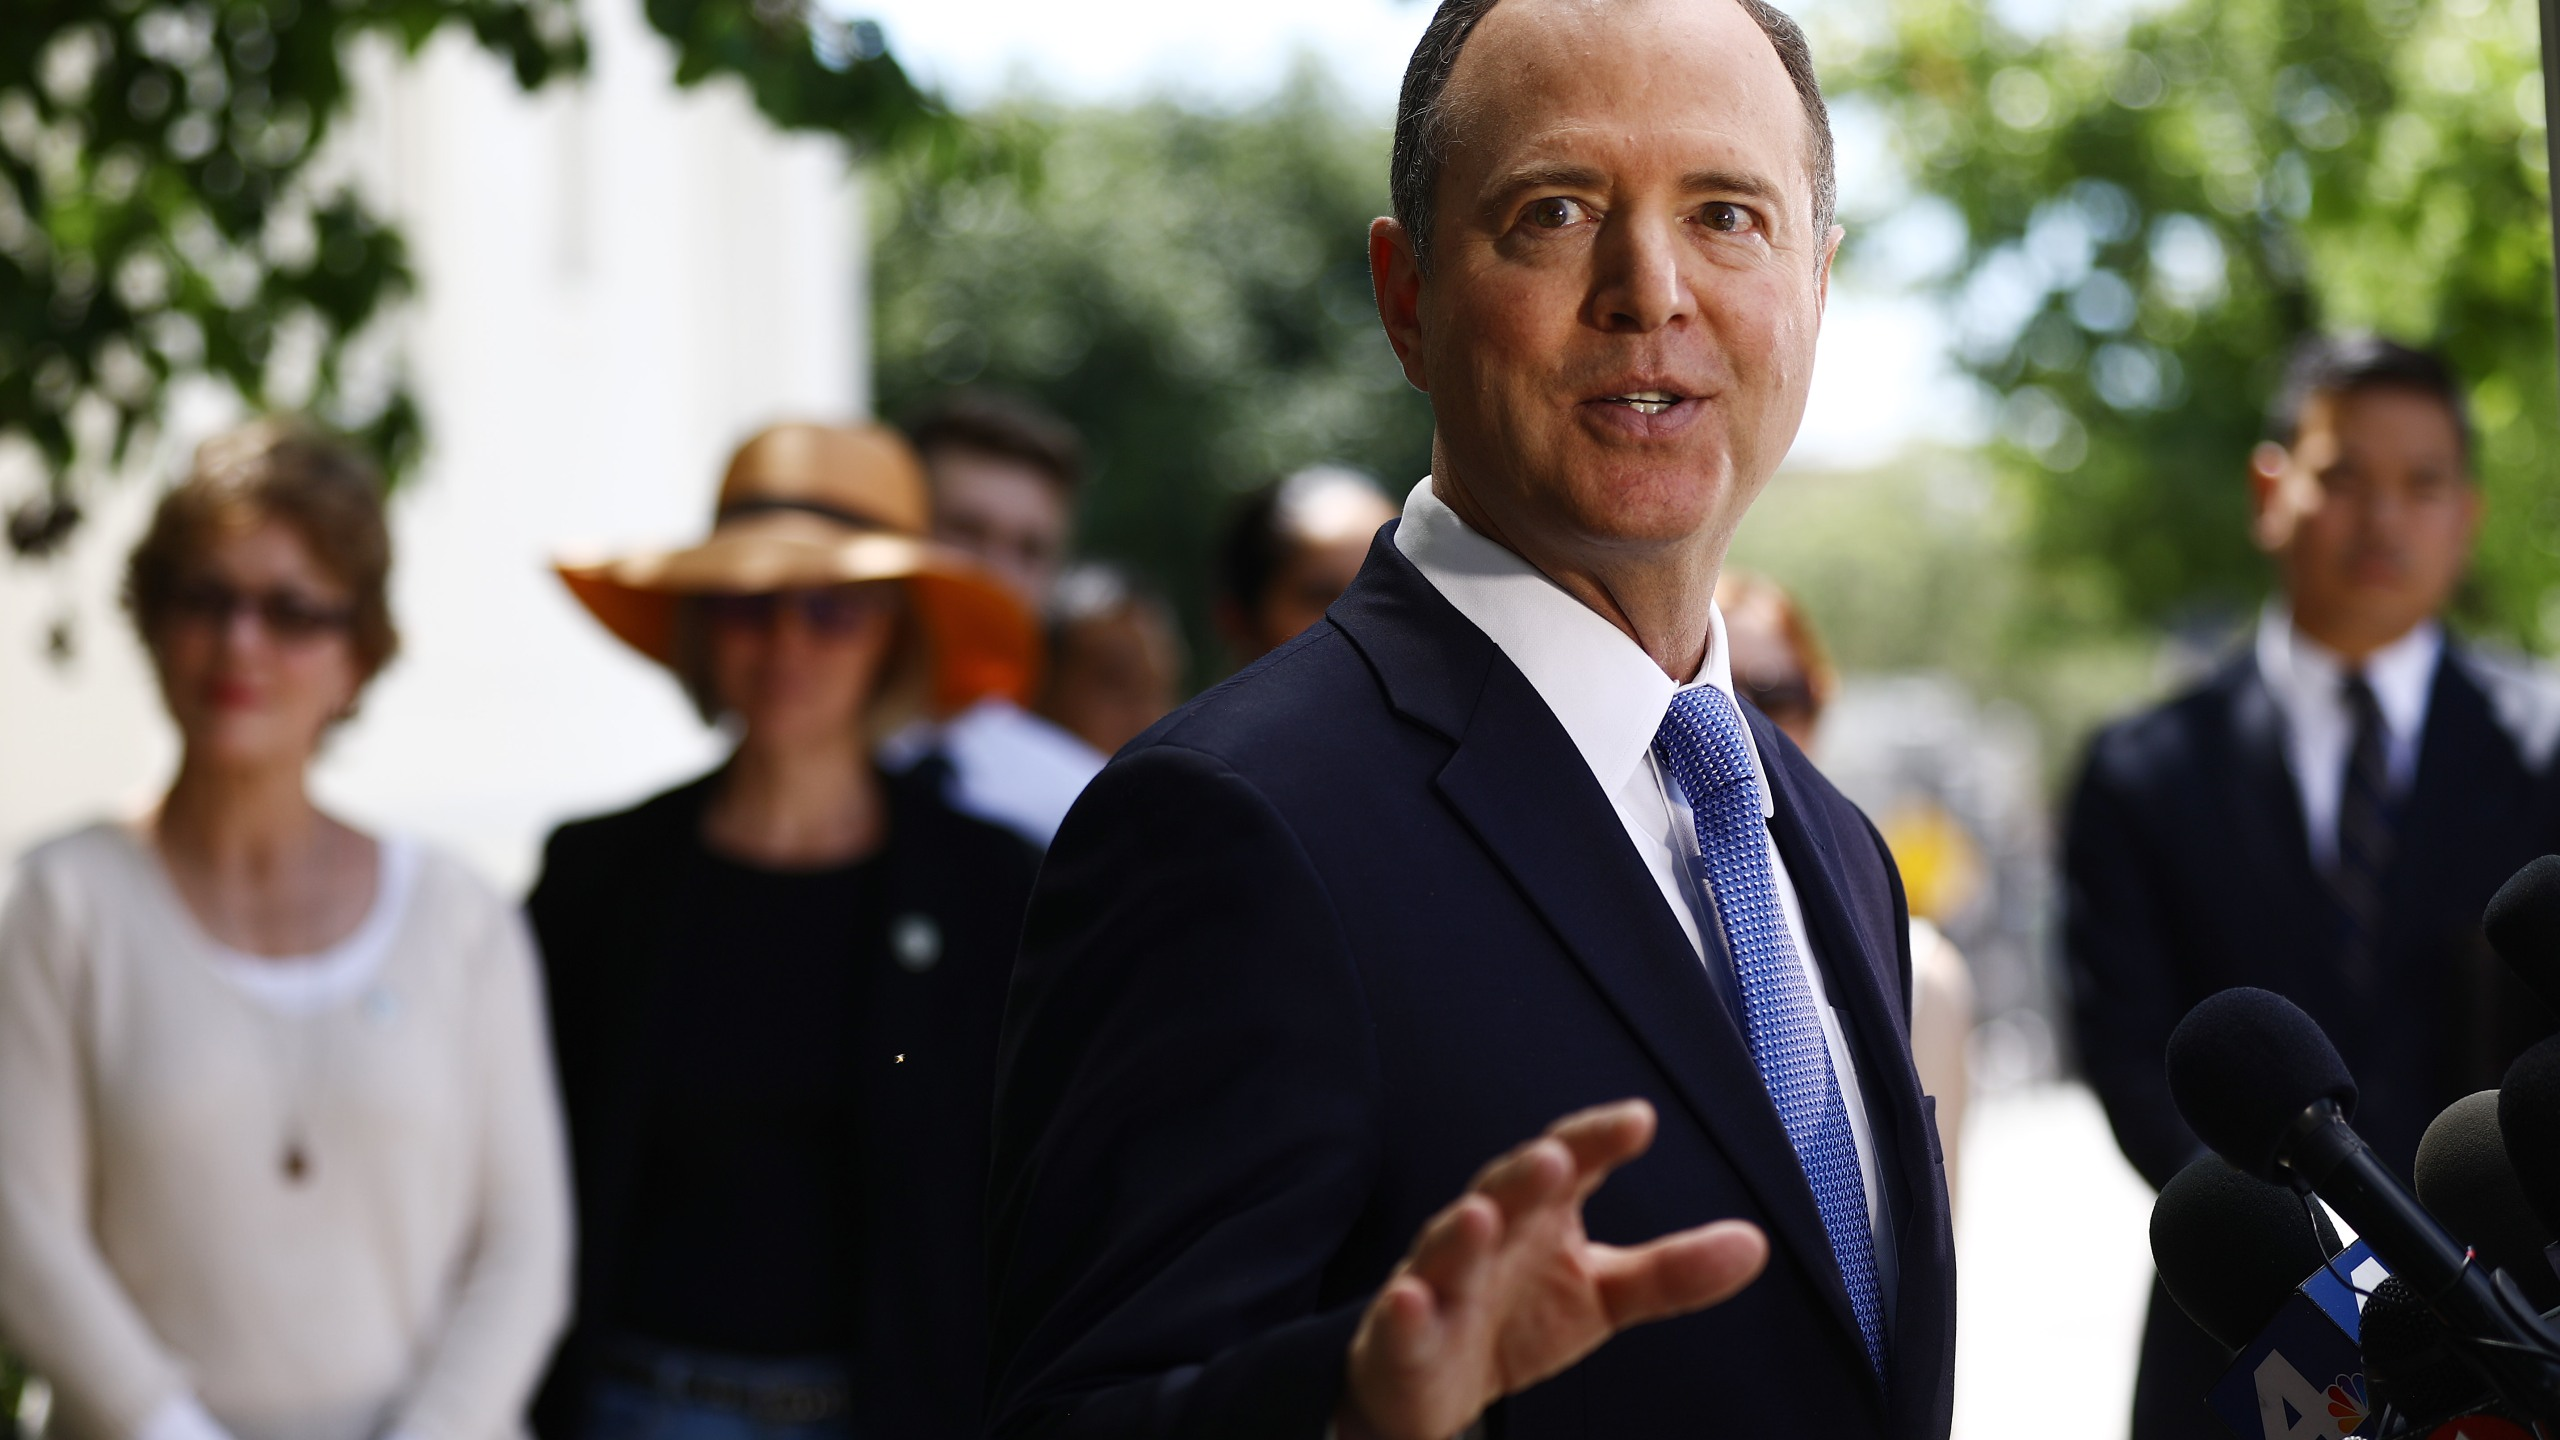 Chairman of the House Intelligence Committee Adam Schiff speaks at a press conference discussing today's release of the redacted Mueller report on April 18, 2019 in Burbank, California.(Credit: Mario Tama/Getty Images)